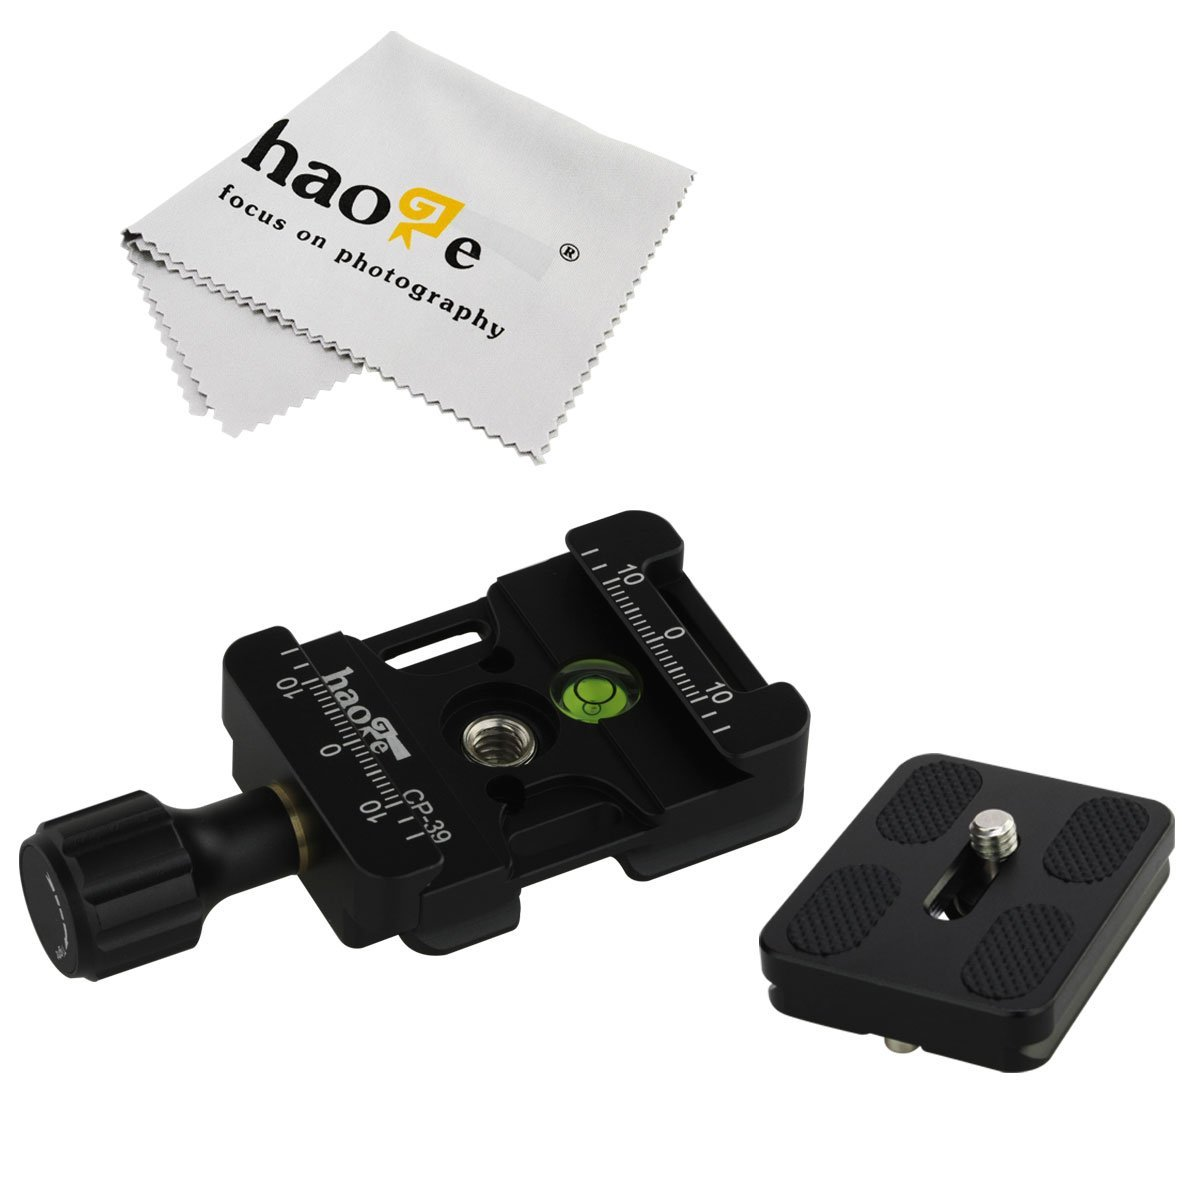 Haoge CP-39 Screw Knob Quick Release Clamp Adapter with Hand Strap Bosses Boss Slot and 50mm Plate for Canon Nikon Sony Pentax Olympus Fujifilm Camera